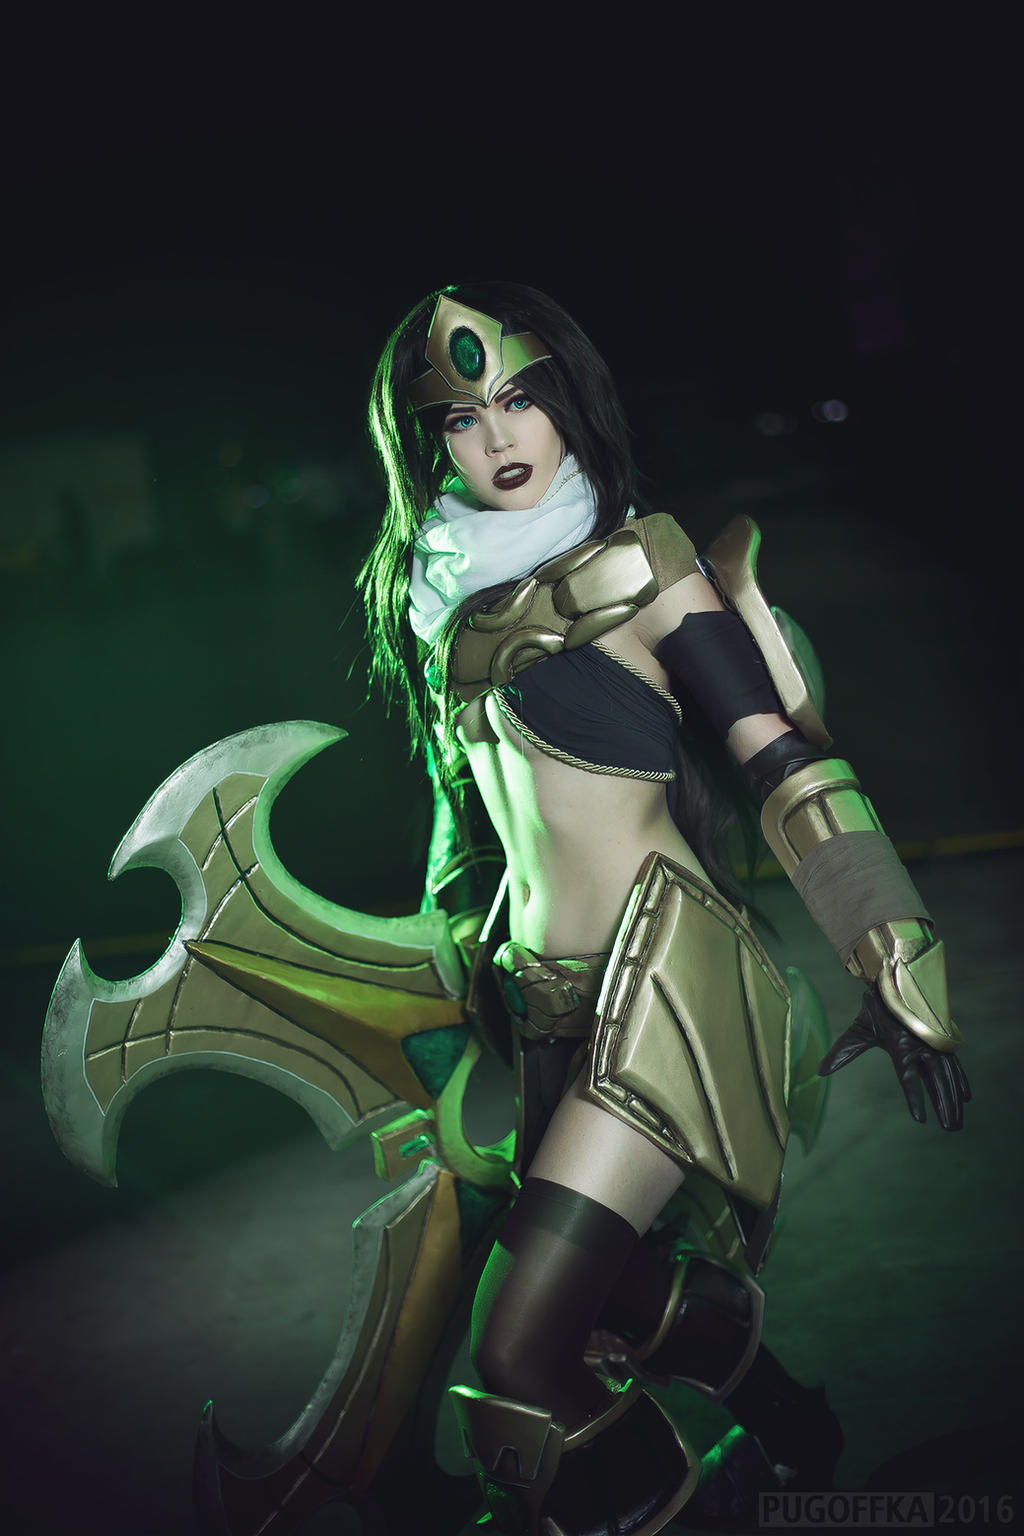 Sivir  Cosplay from League of Legends! by TineMarieRiis